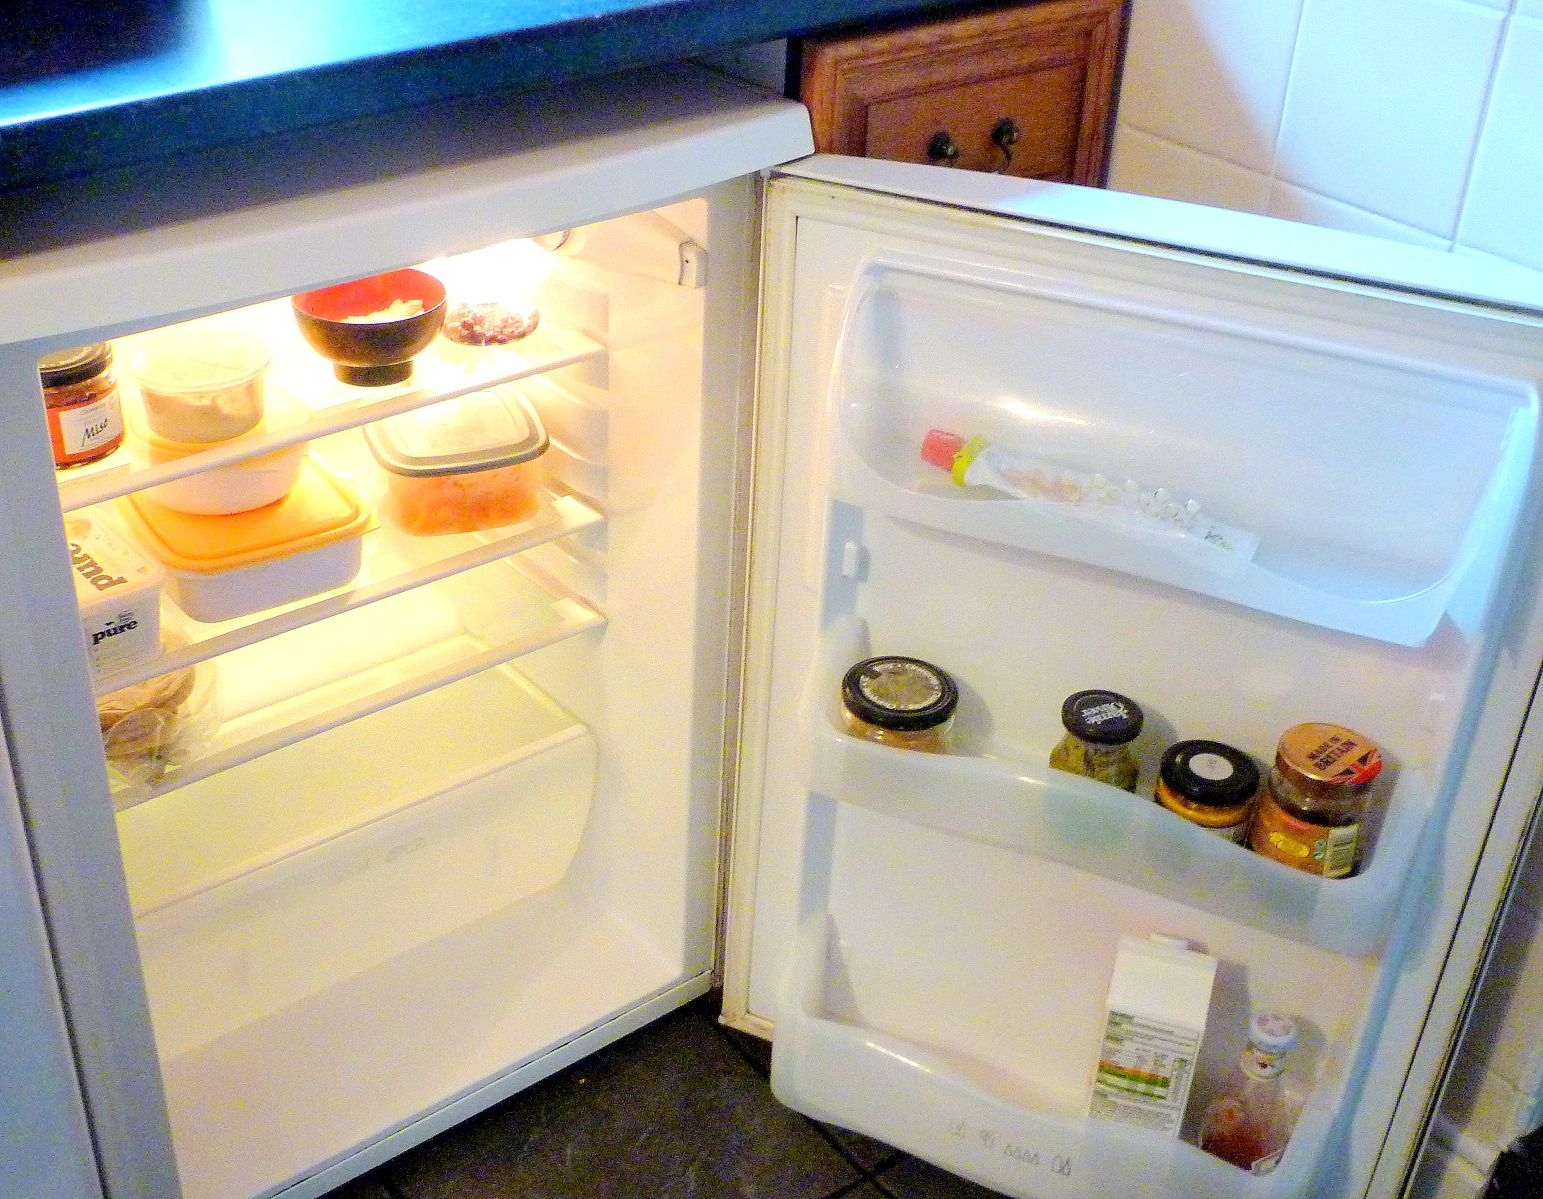 Clean fridge - Ah! that's better.